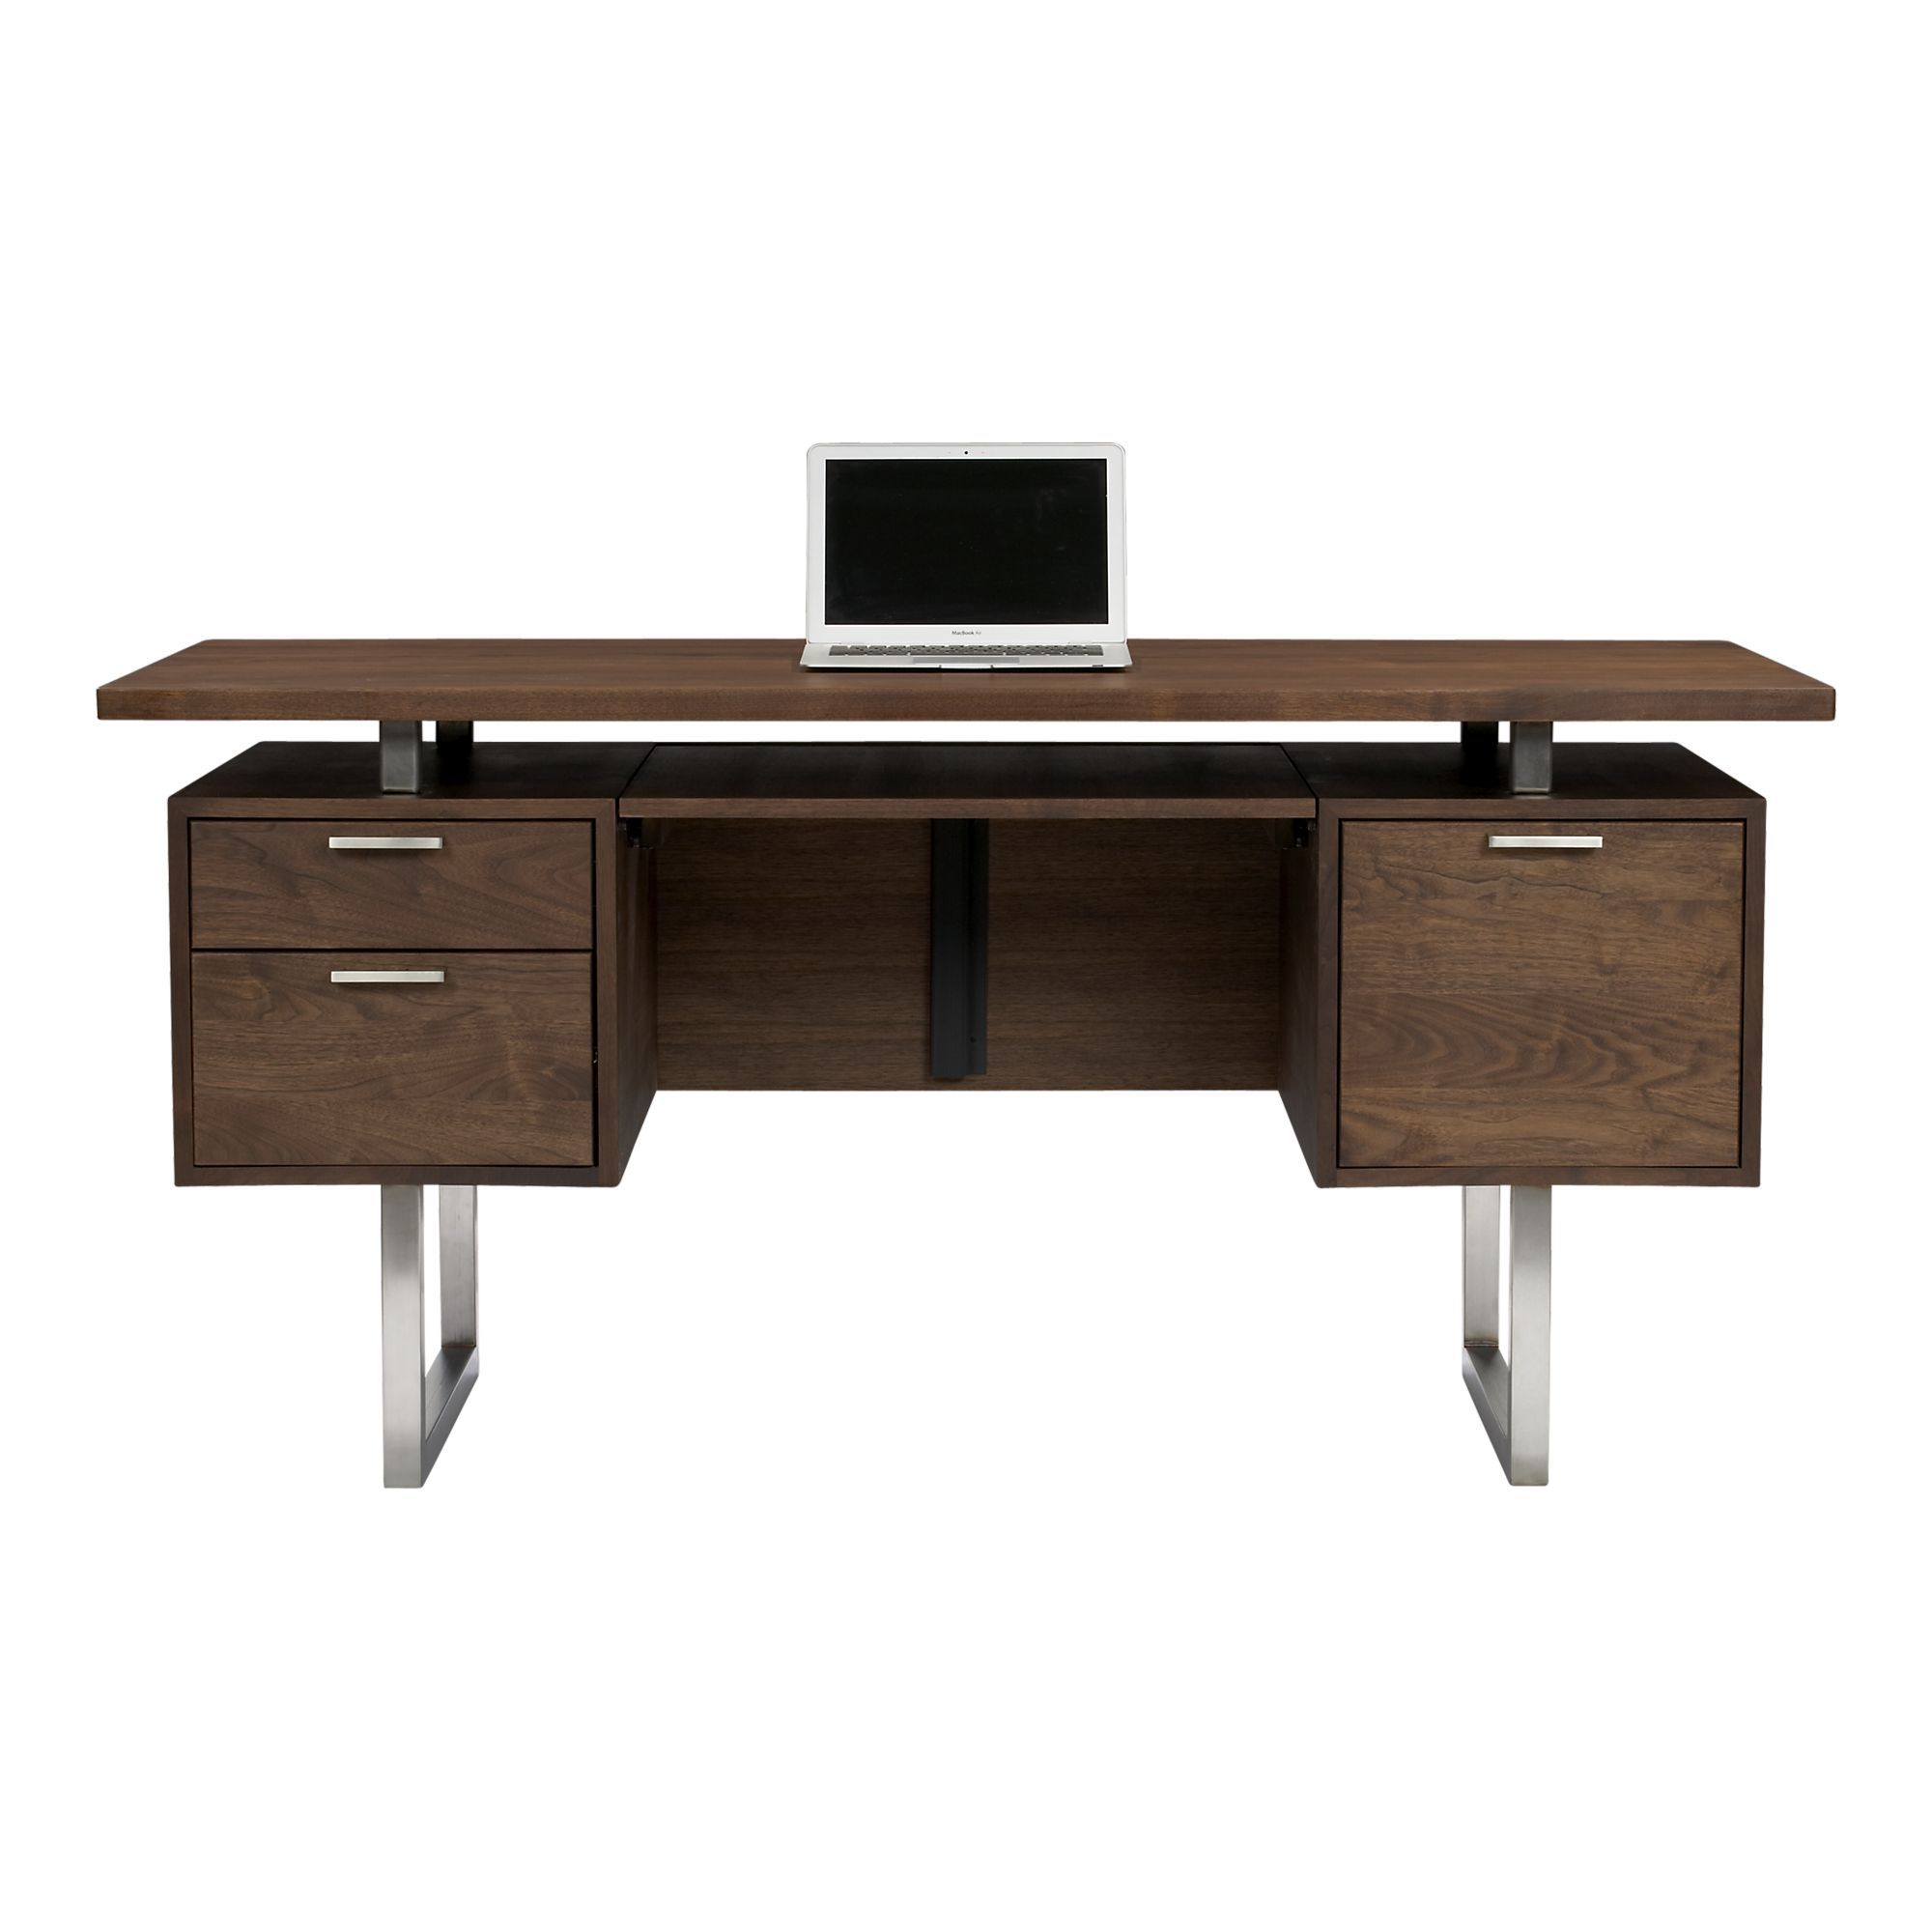 Clybourne Desk-- I Totally Just Bought This Desk And I'm